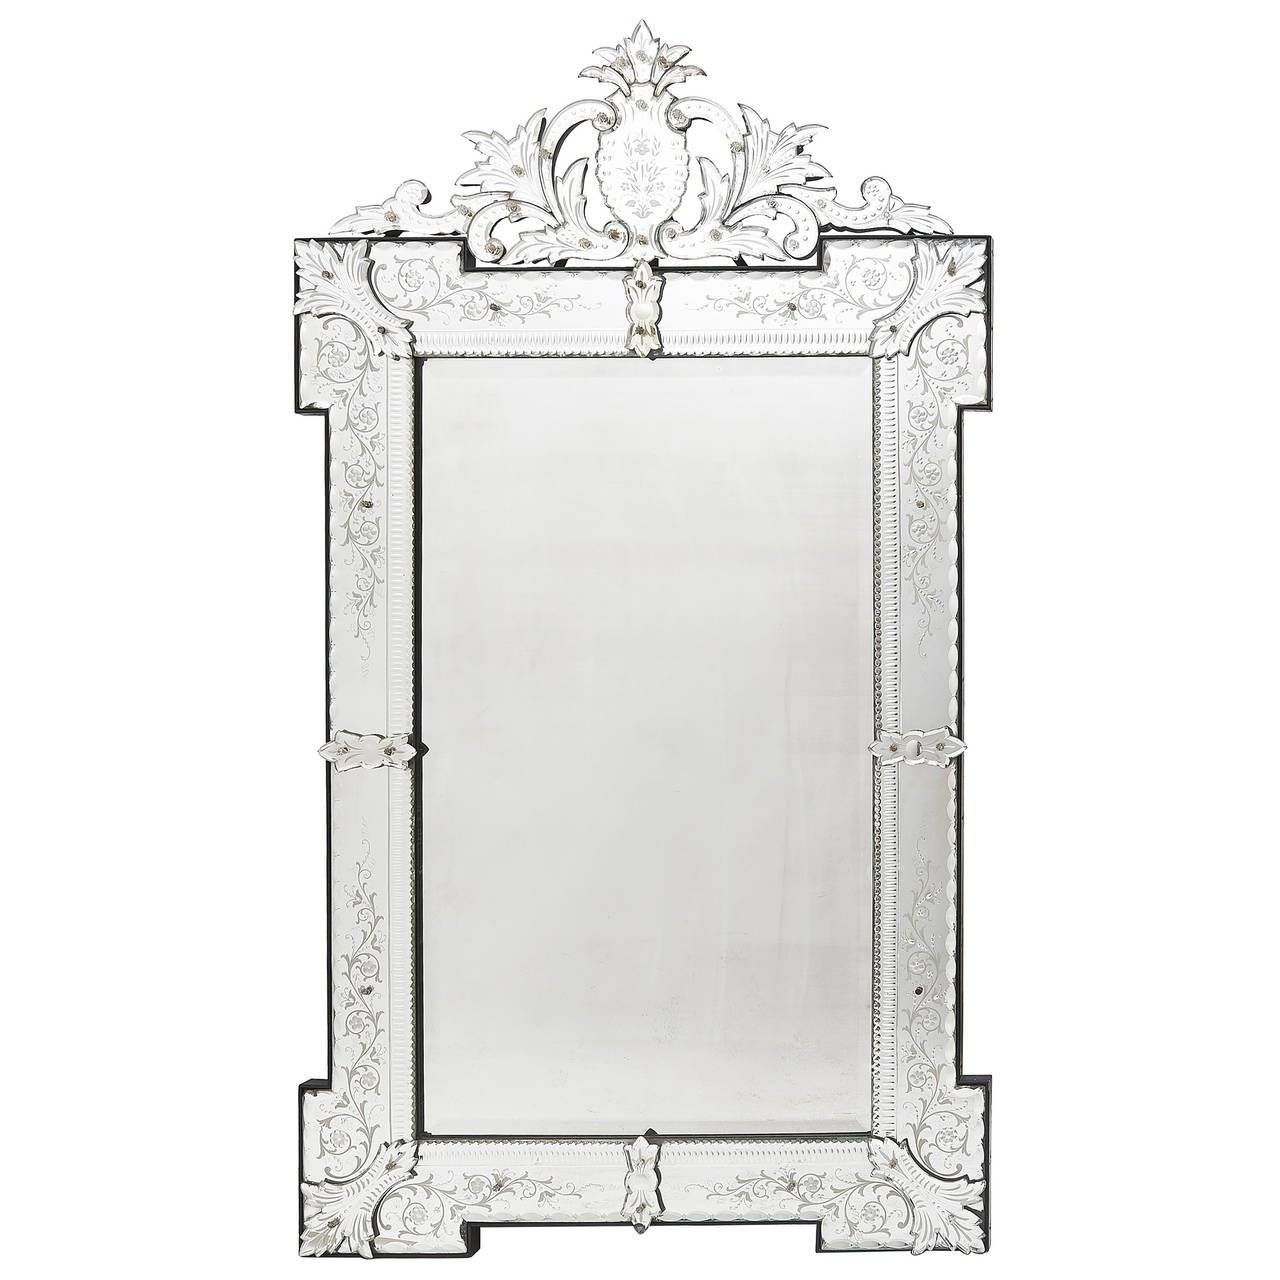 French Venetian Style Engraved Rectangular Mirror With Foliate Within Rectangular Venetian Mirrors (View 8 of 15)